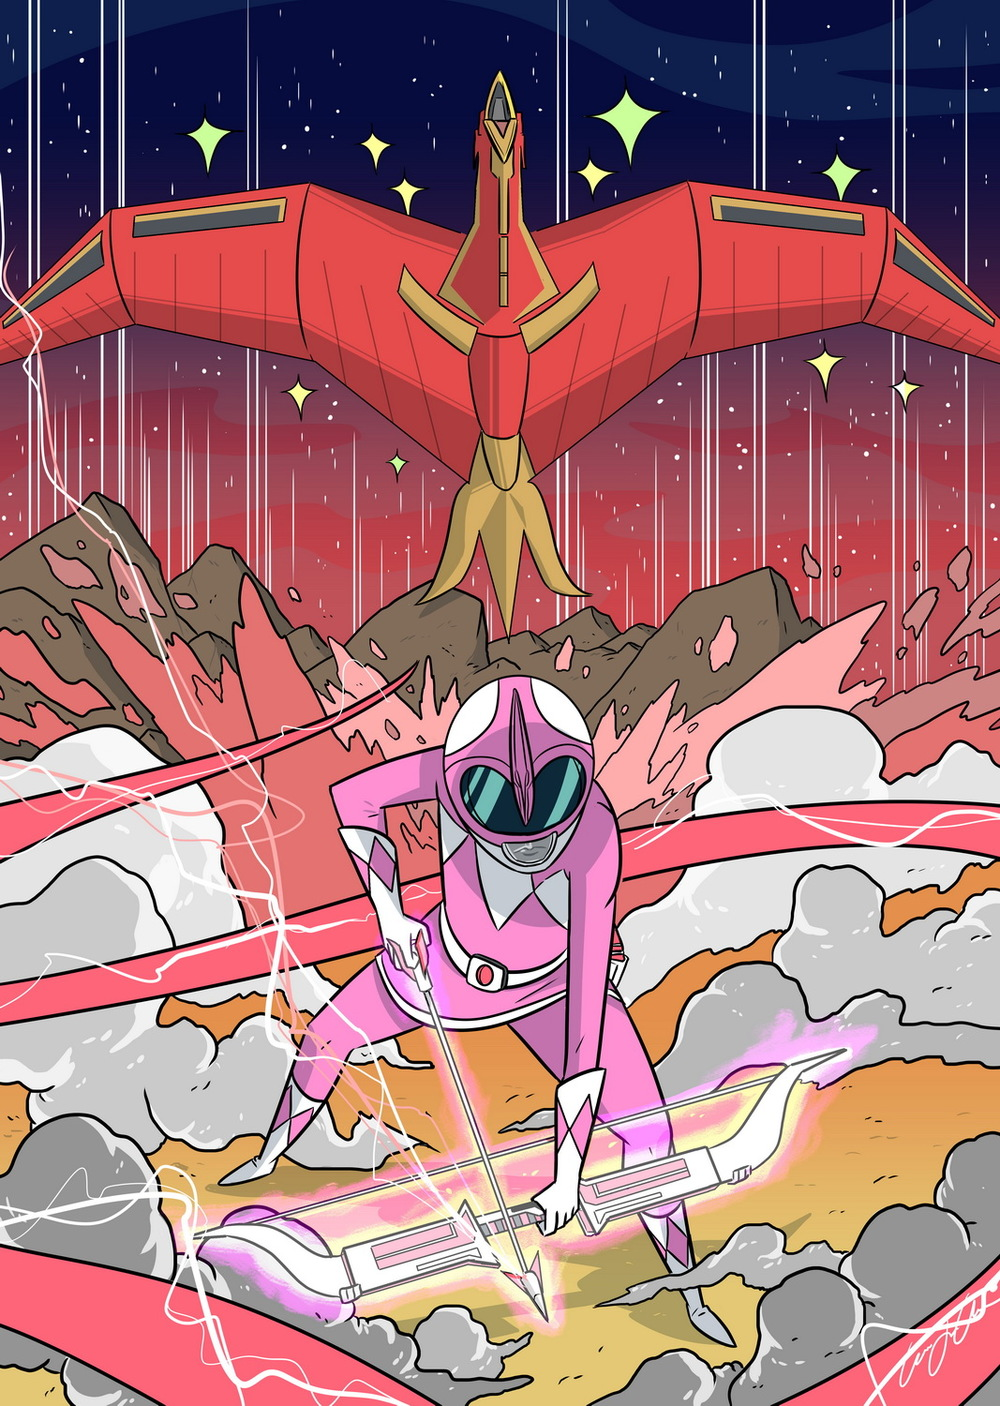 hunter_pinkrangercover_fix.jpg